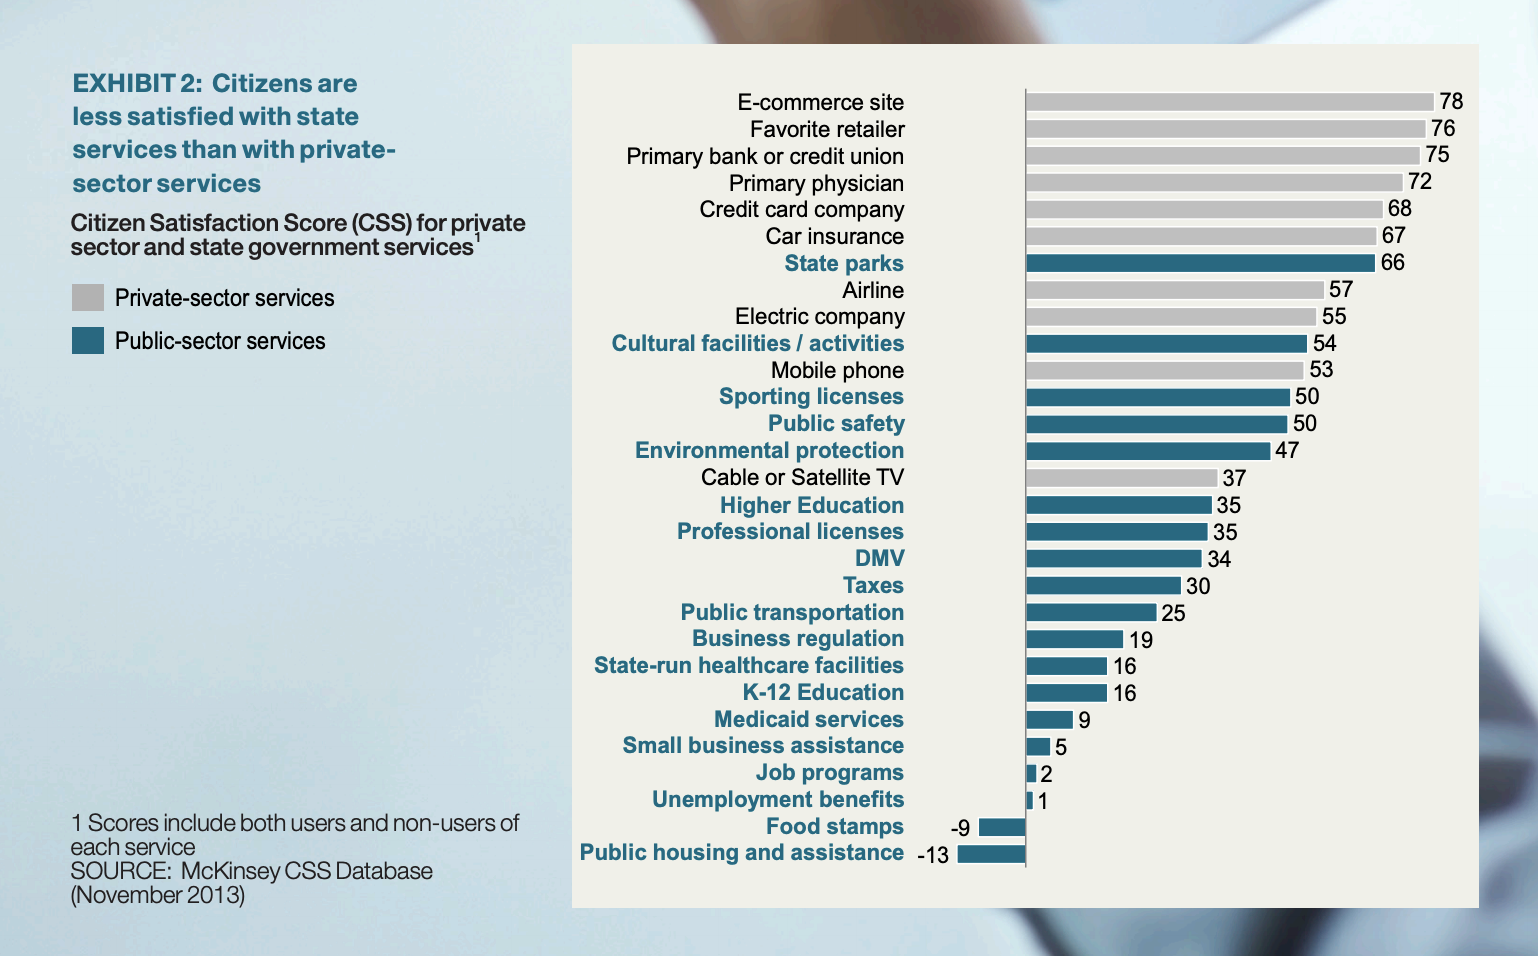 McKinsey Center for Government, PUTTING CITIZENS FIRST: How to improve citizens' experience and satisfaction with government services, 2014